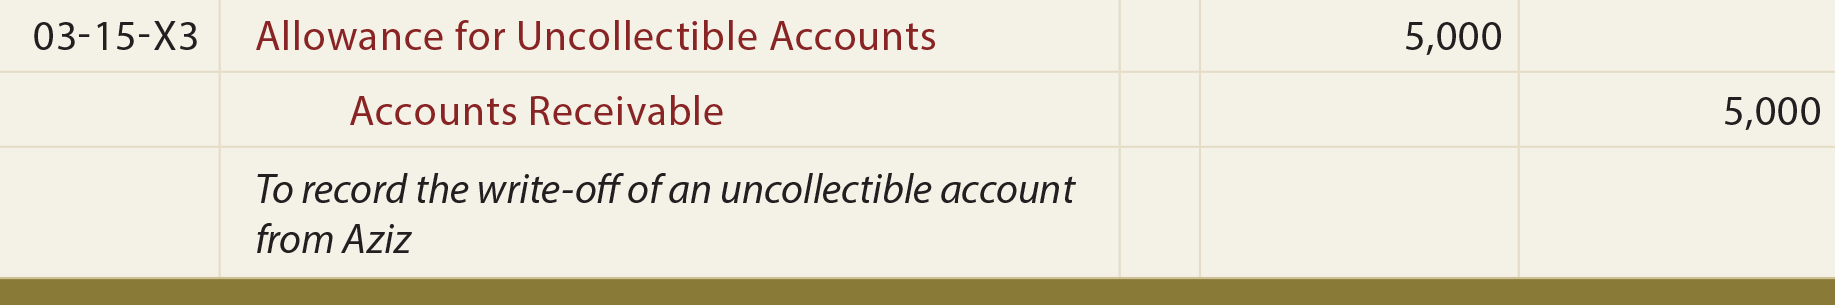 Allowance for Uncollectible Accounts Journal entry